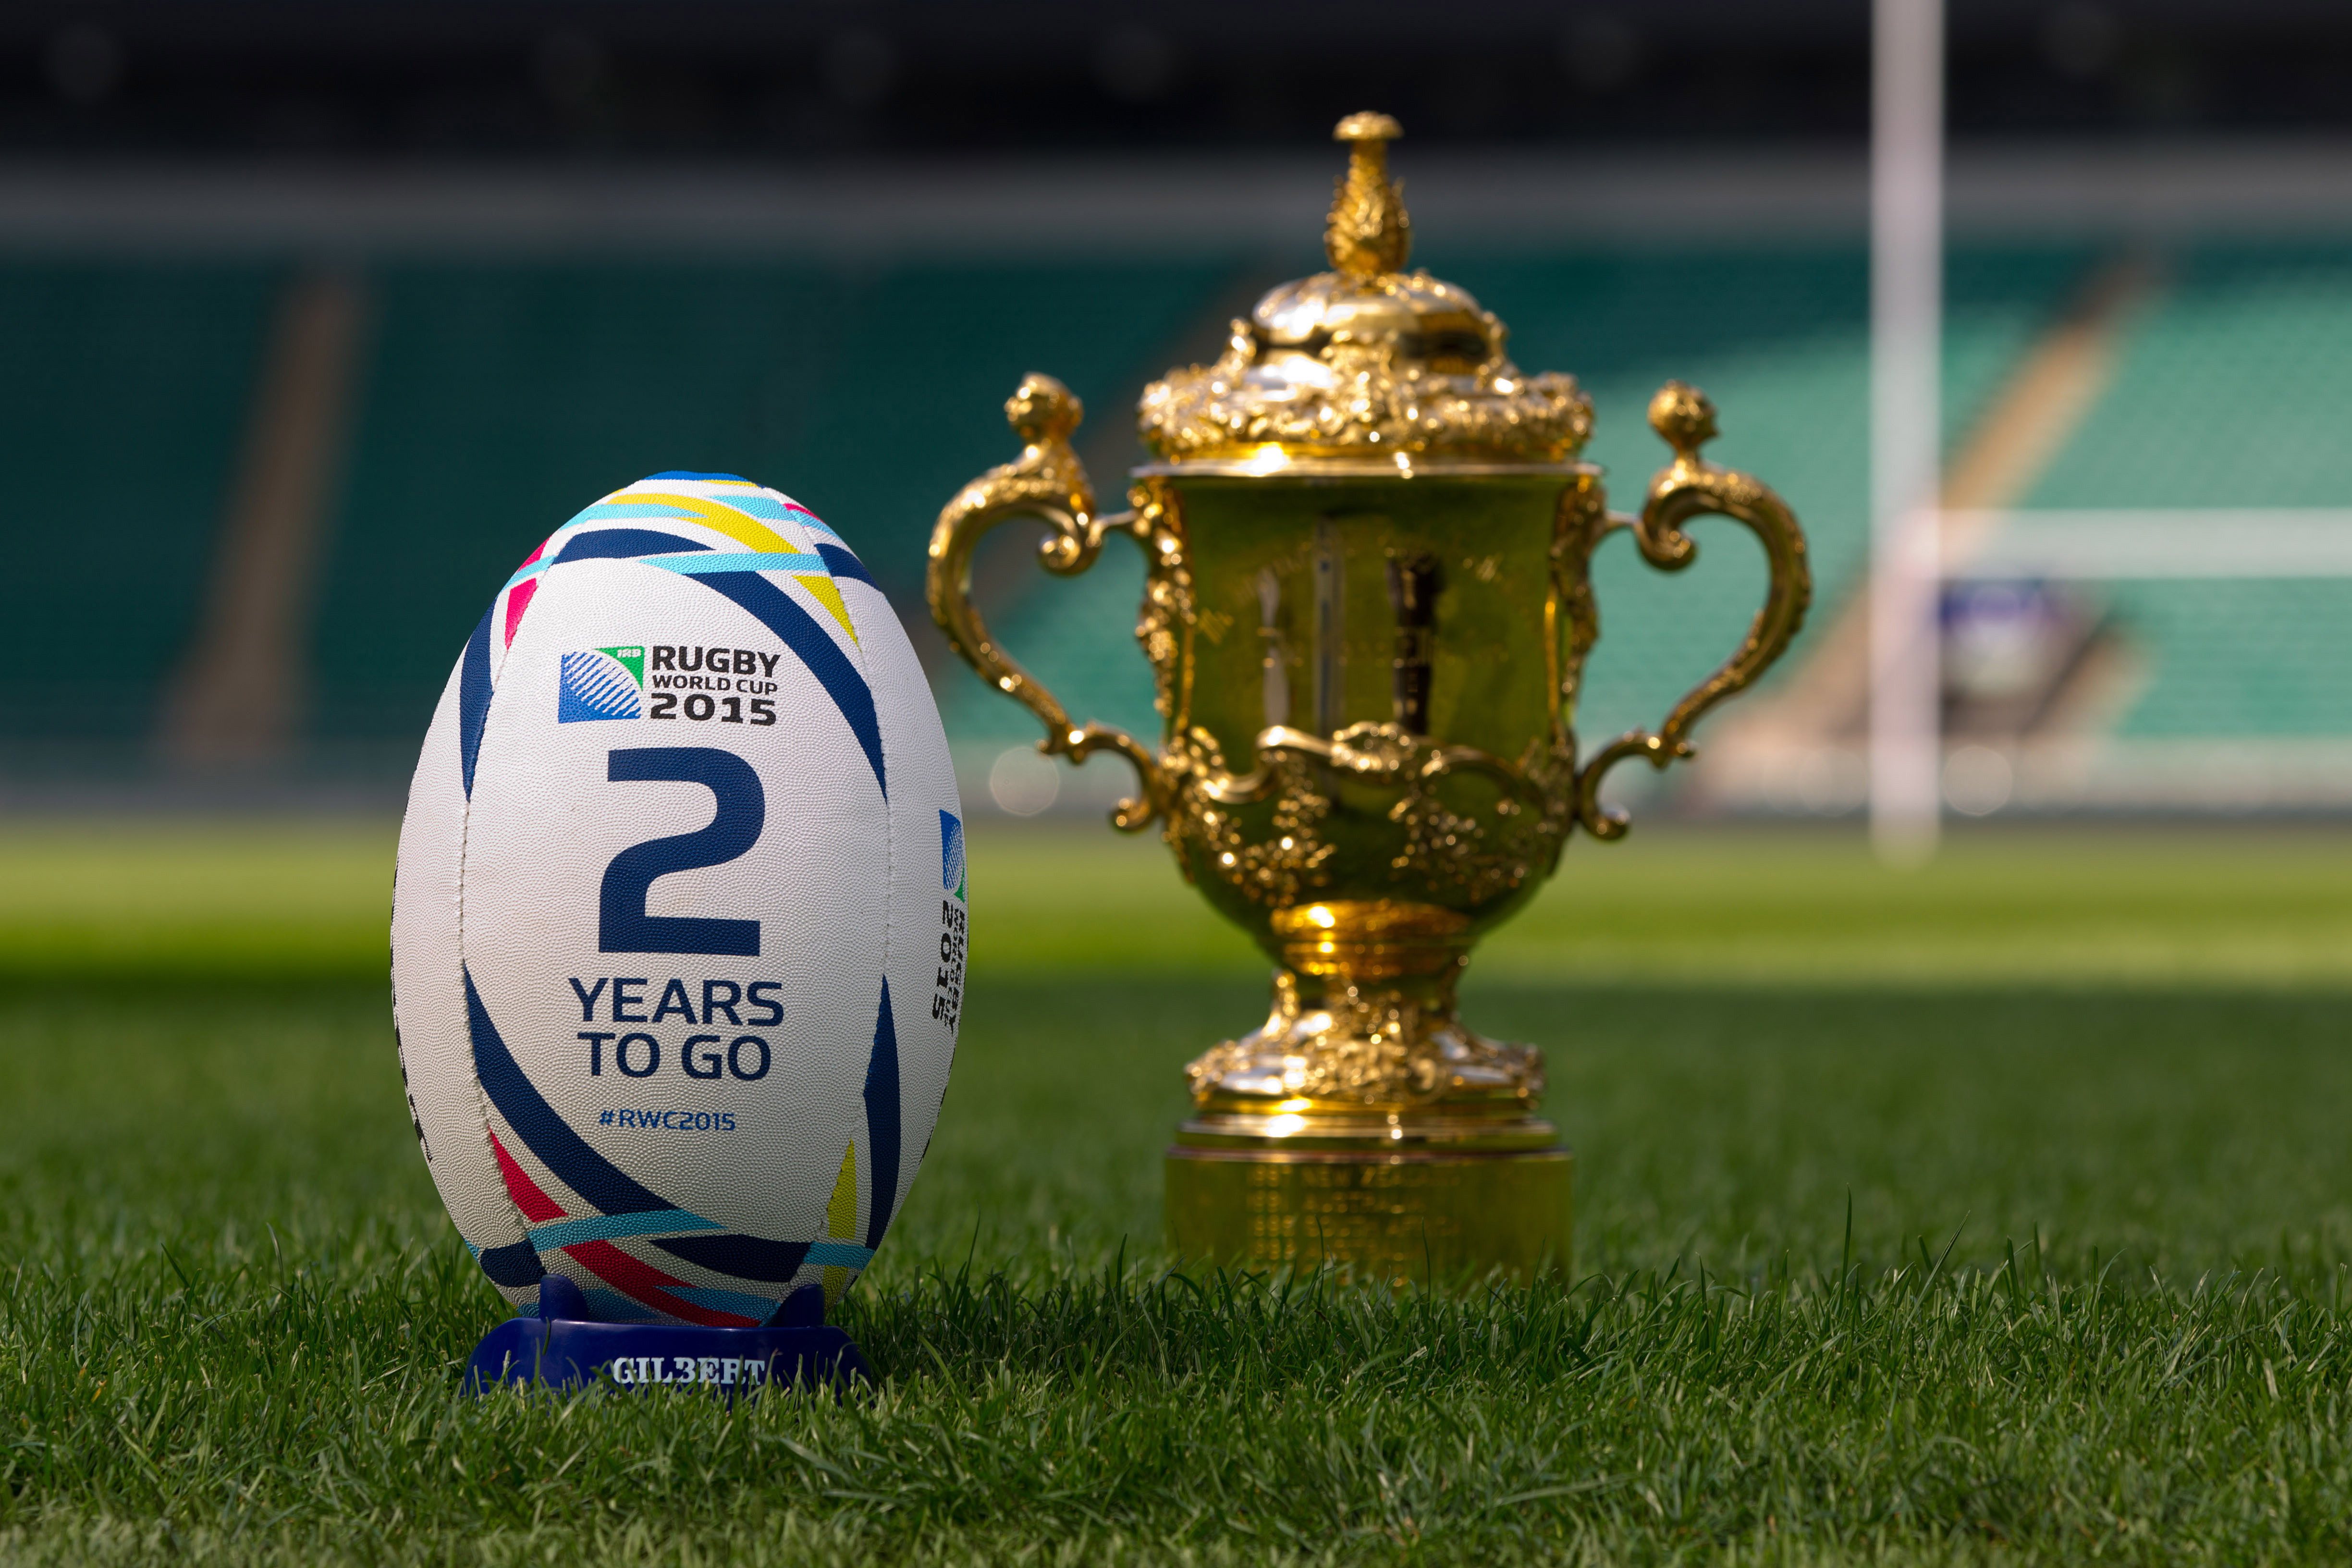 rugby world cup - photo #24